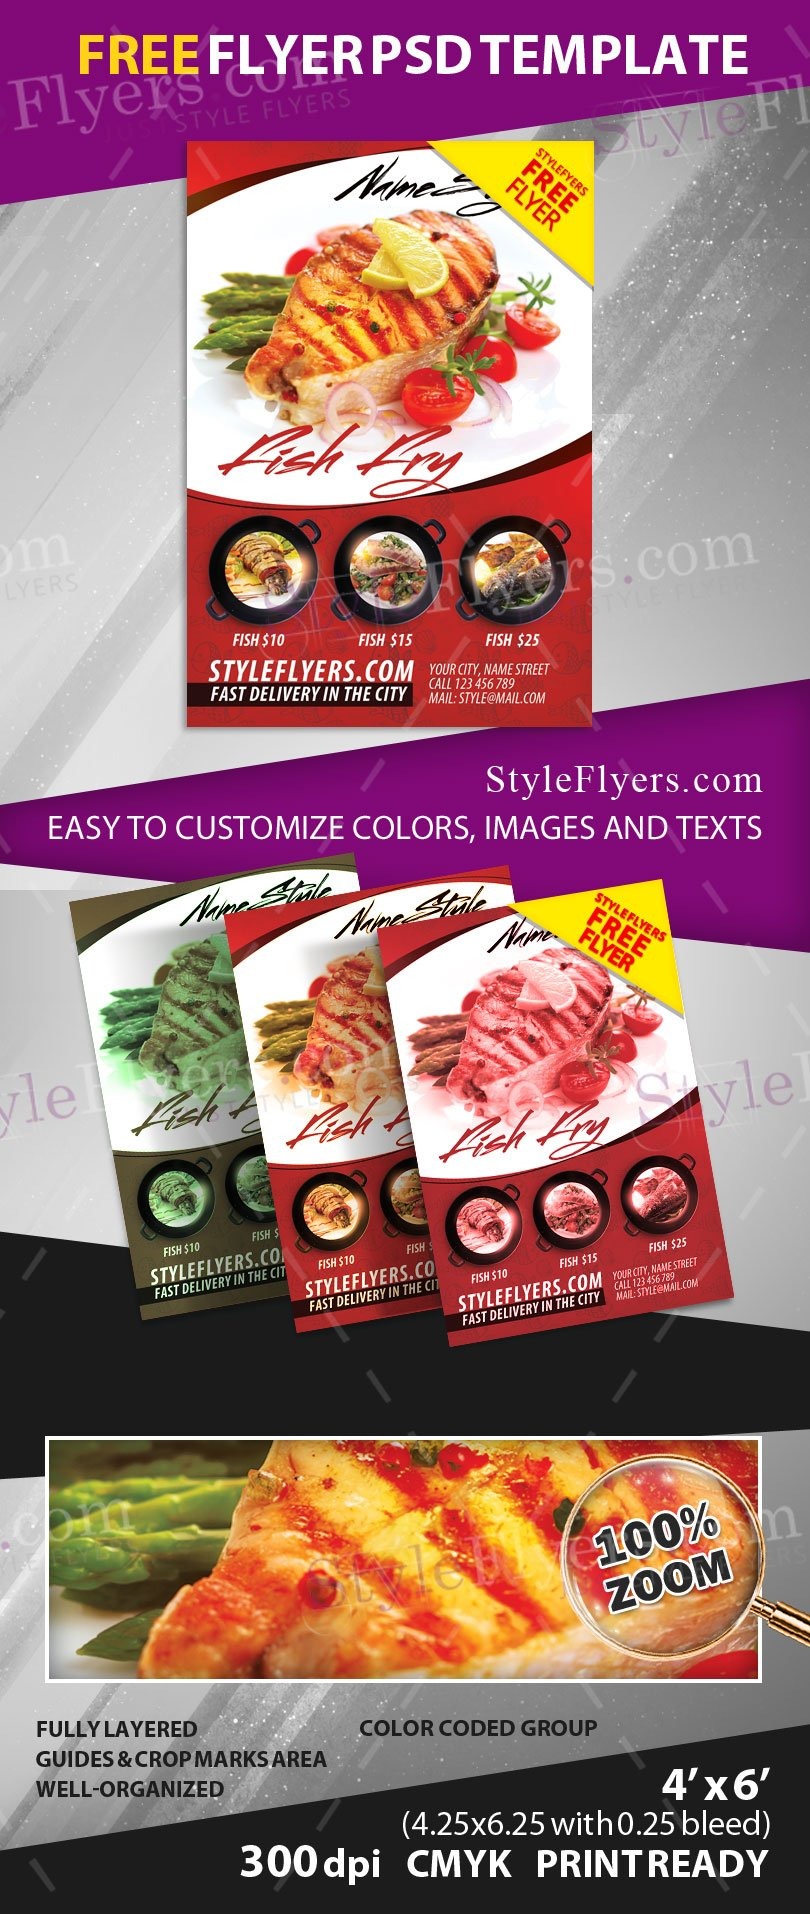 promo psd flyer template v styleflyers s are perfect events when you can get something you want out paying too much s need good promotion because such events are able to increase